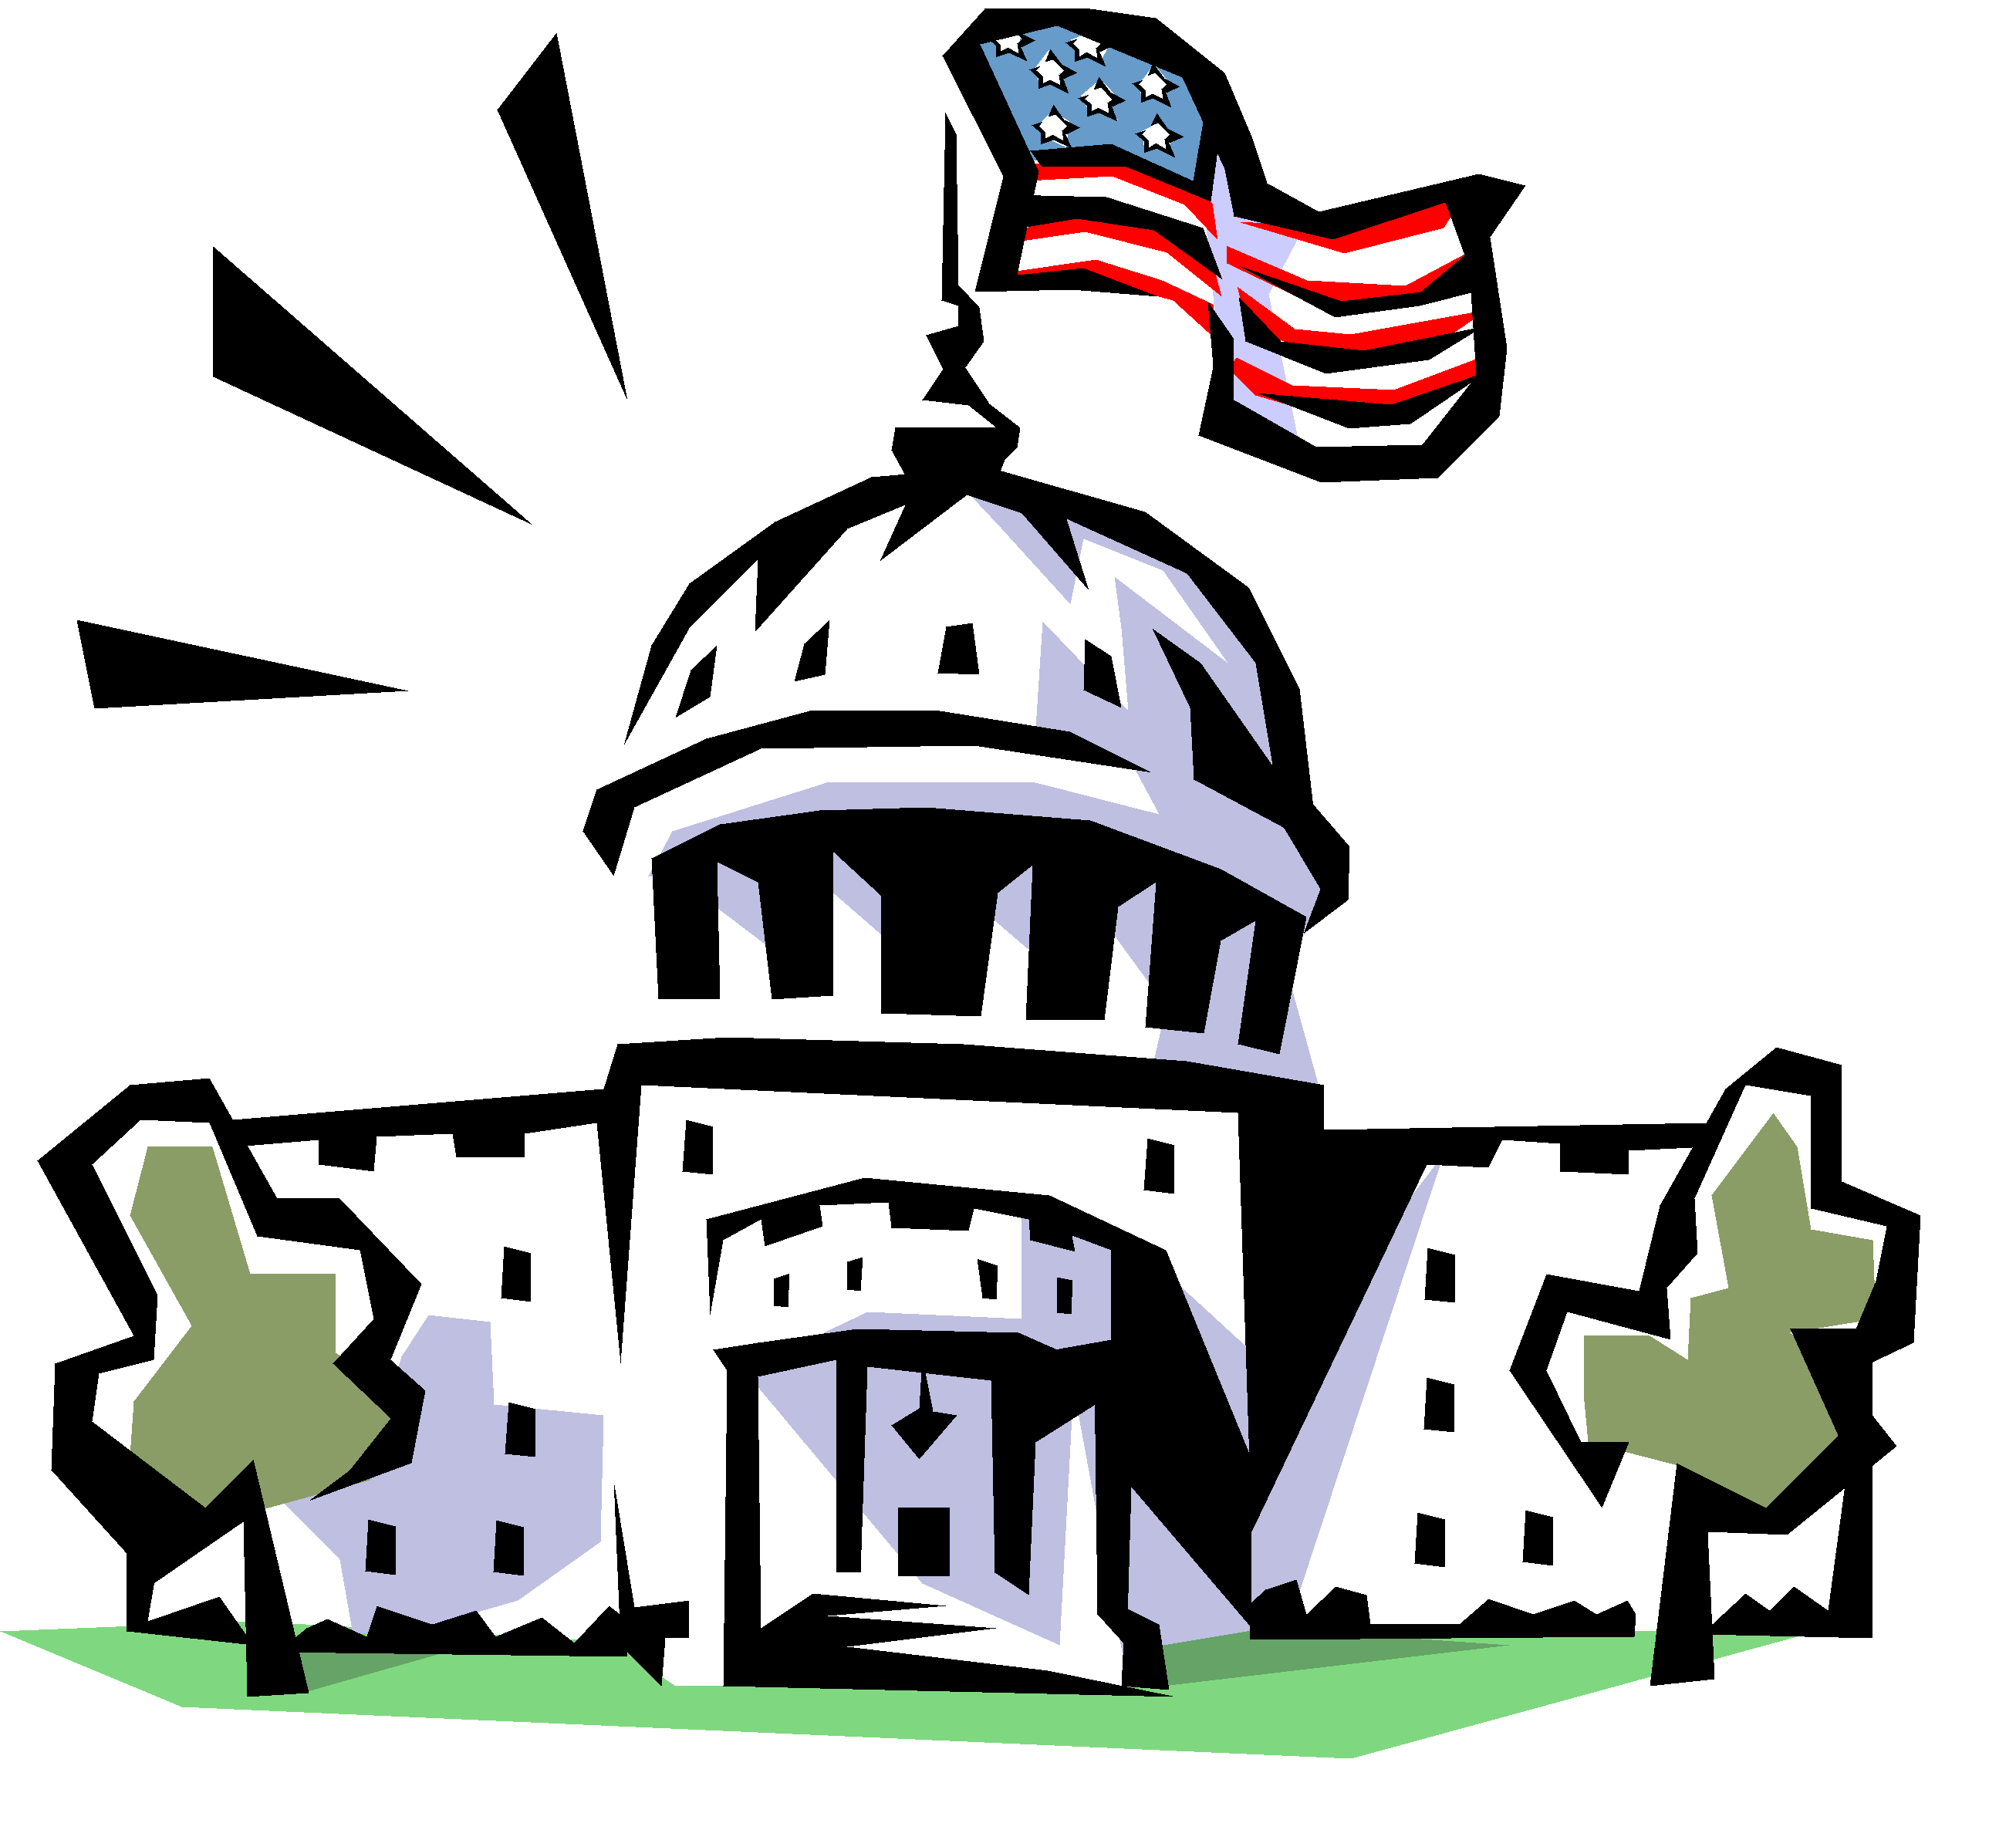 Strong federal government clipart.